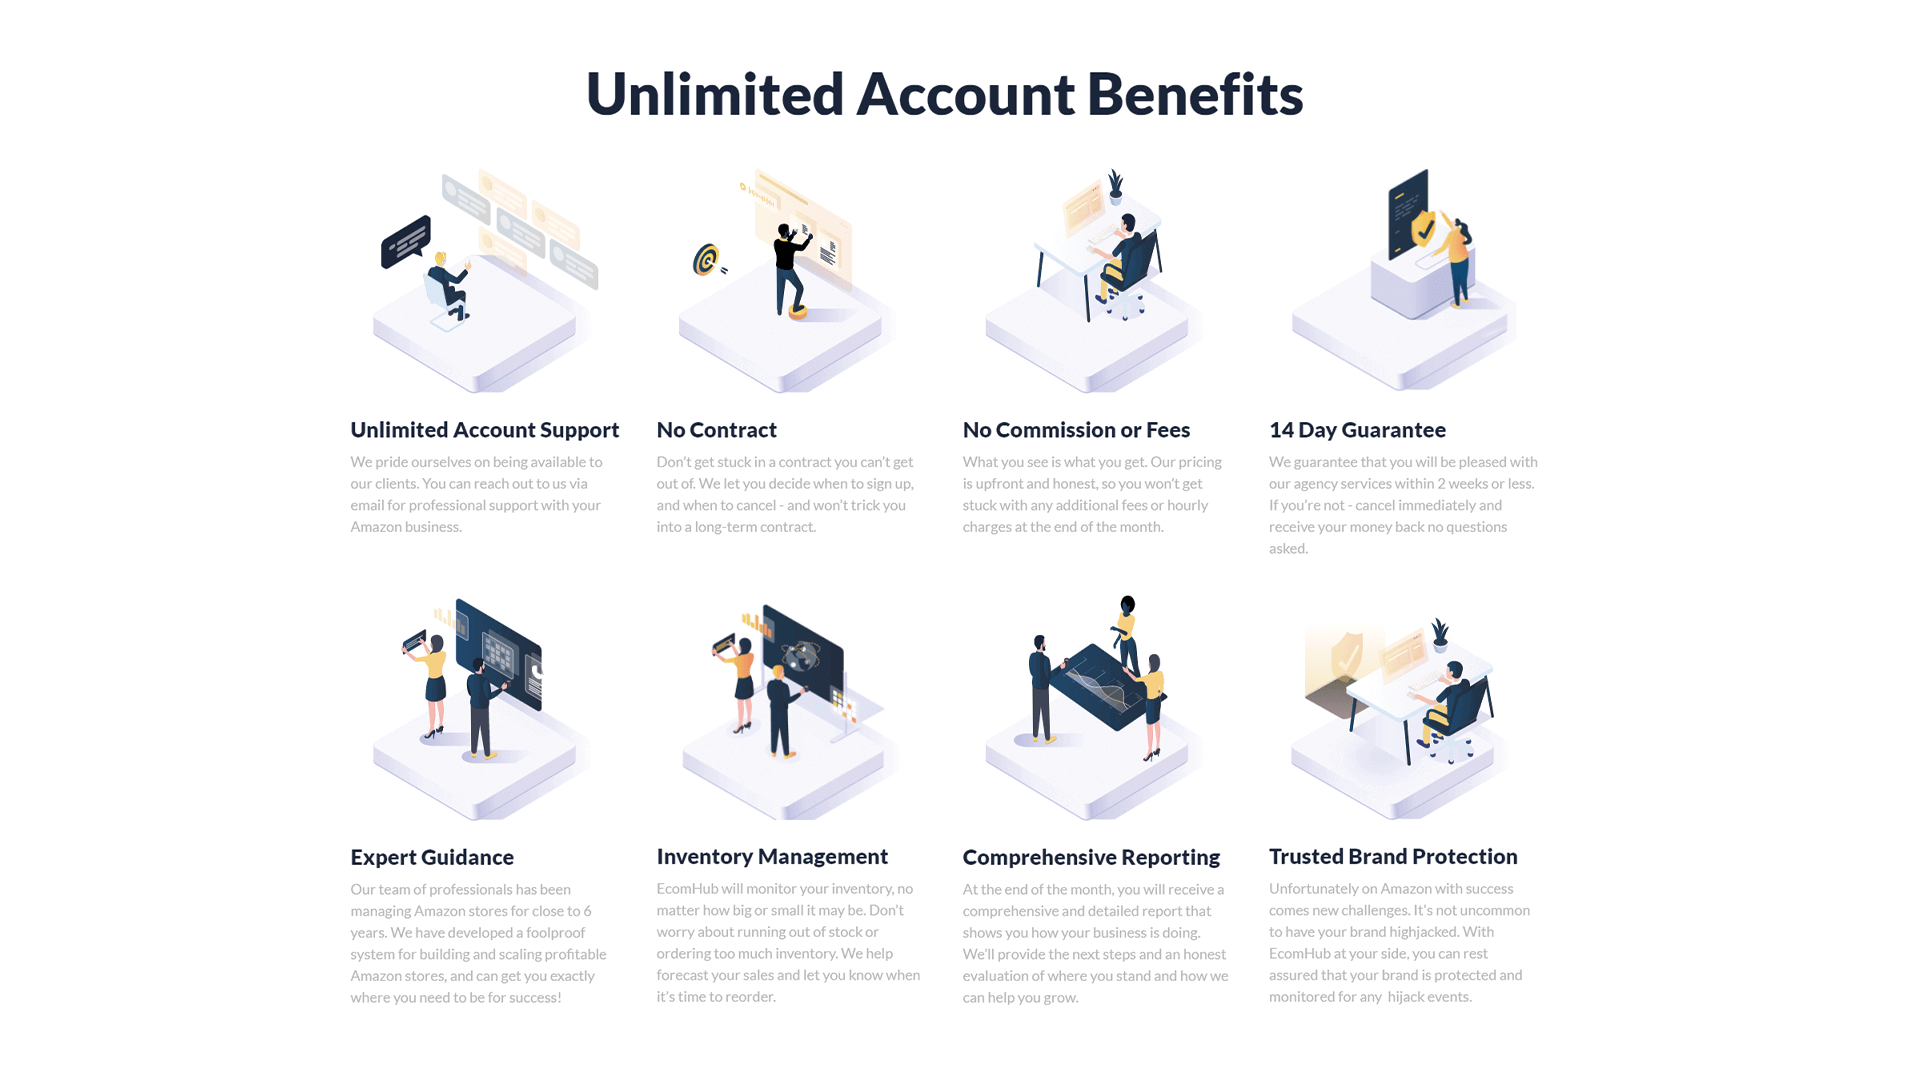 The unlimited account benefits of our Agency Program.